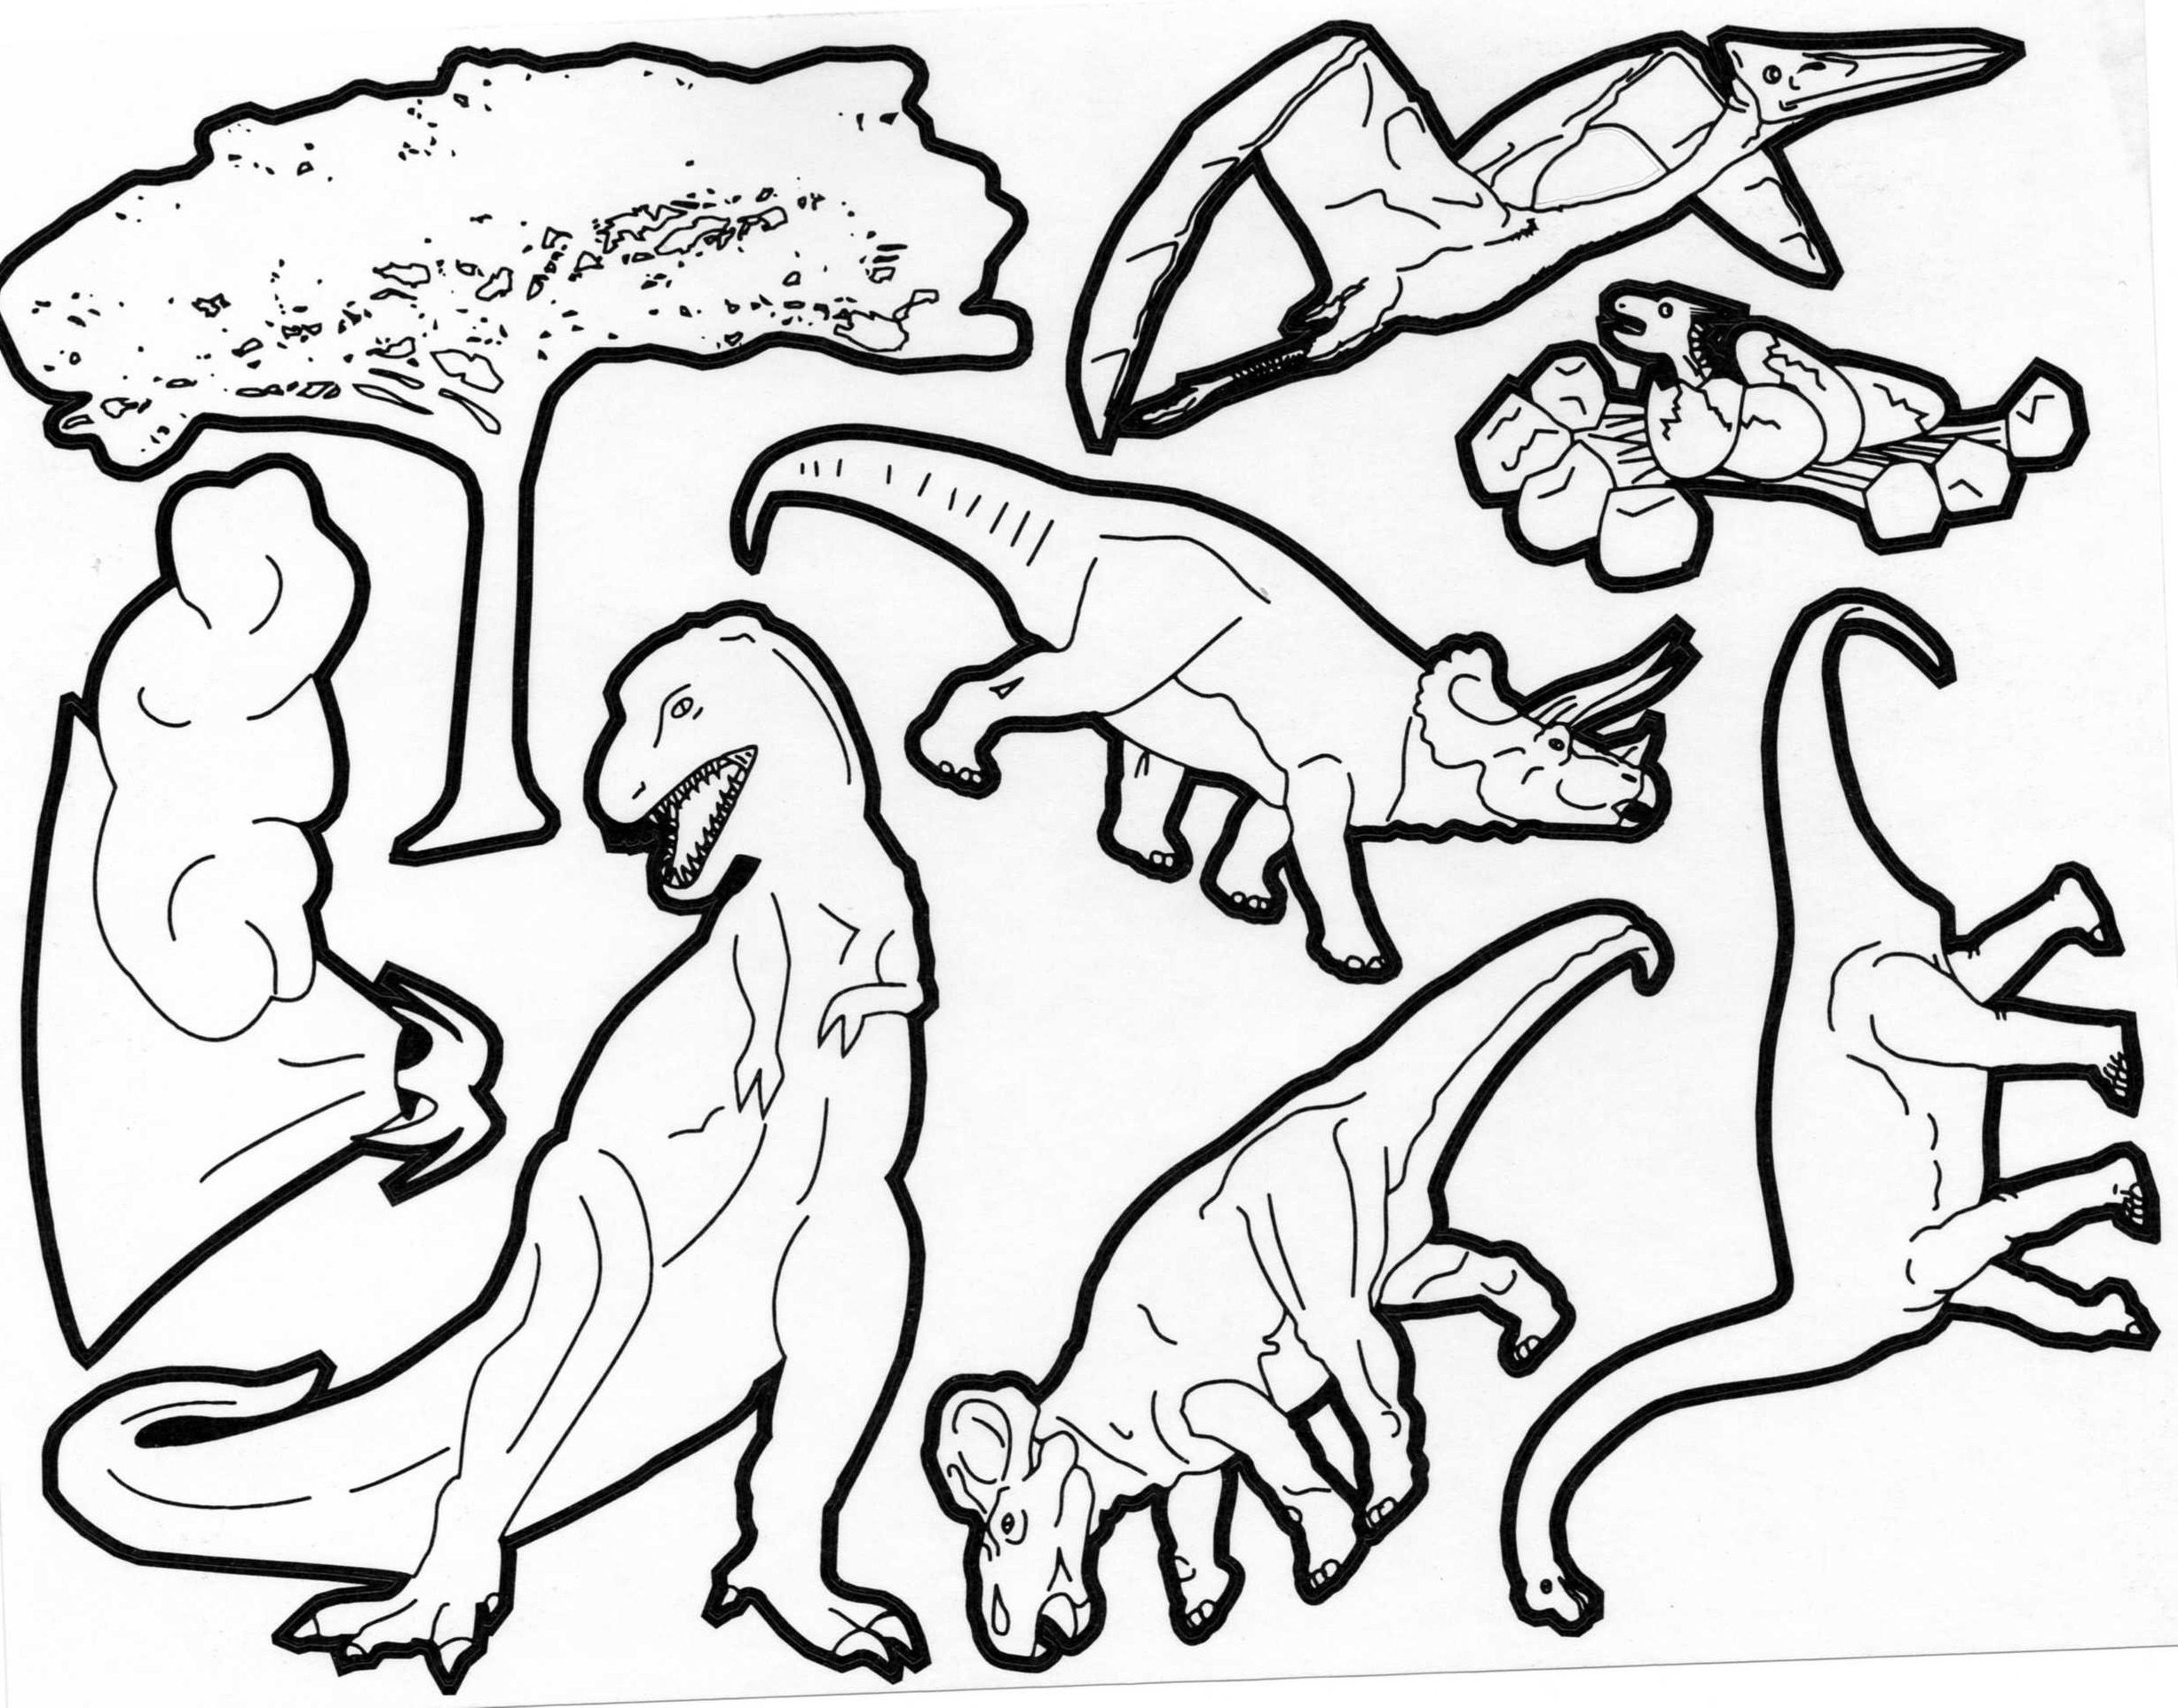 Charmant Coloriage Dinosaures 92 sur Coloriage Books by Coloriage Dinosaures